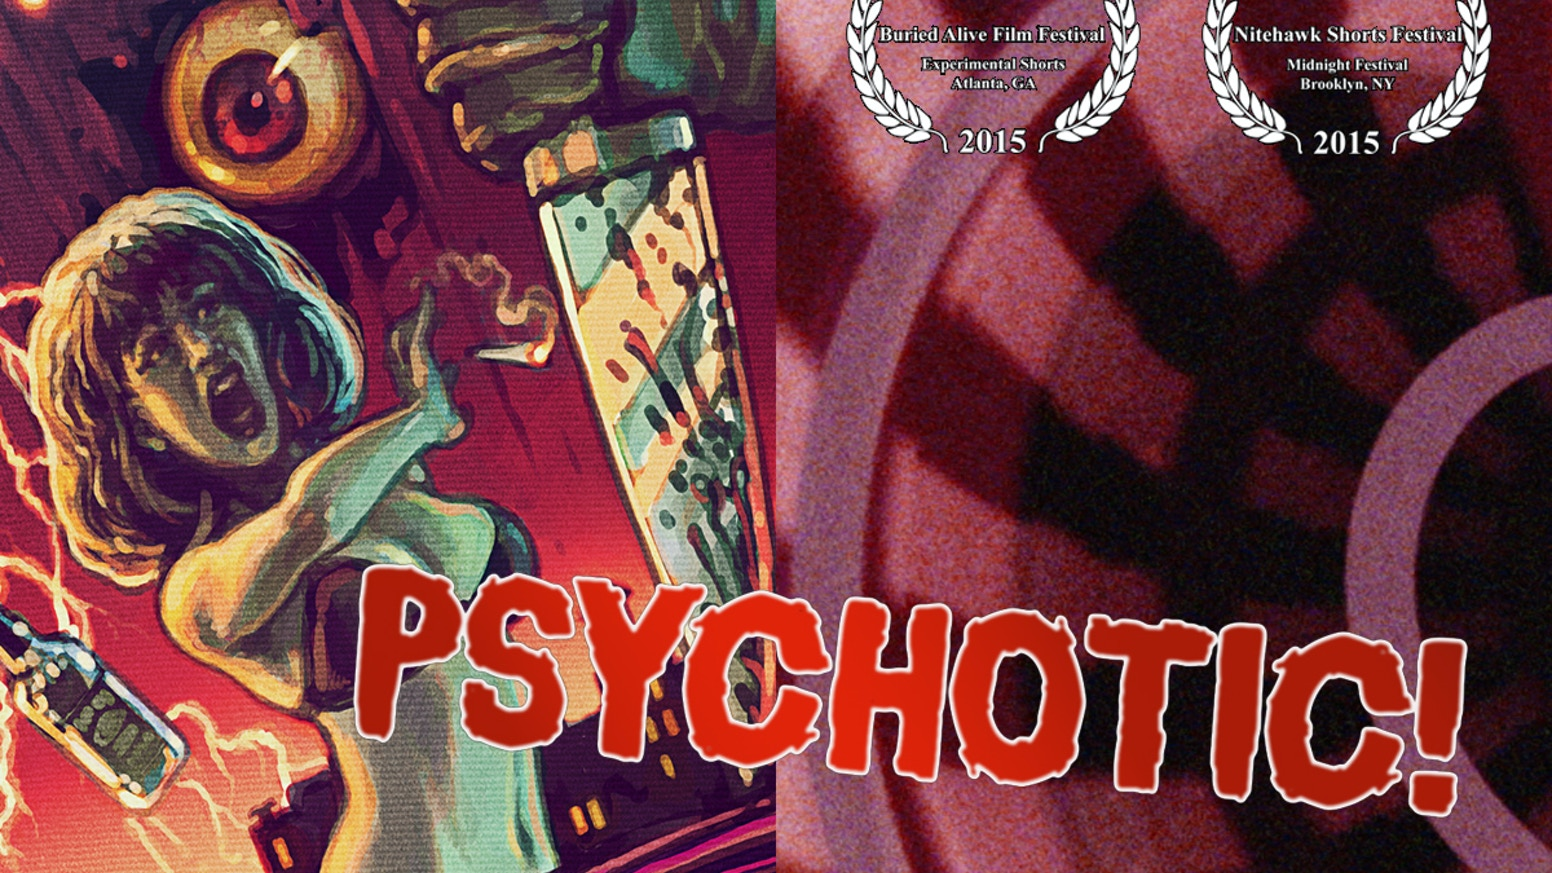 PSYCHOTIC! is a bloody psychedelic slasher set in the Bushwick party scene of Brooklyn, NY. Produced by Maxwell Frey and Derek Gibbons.